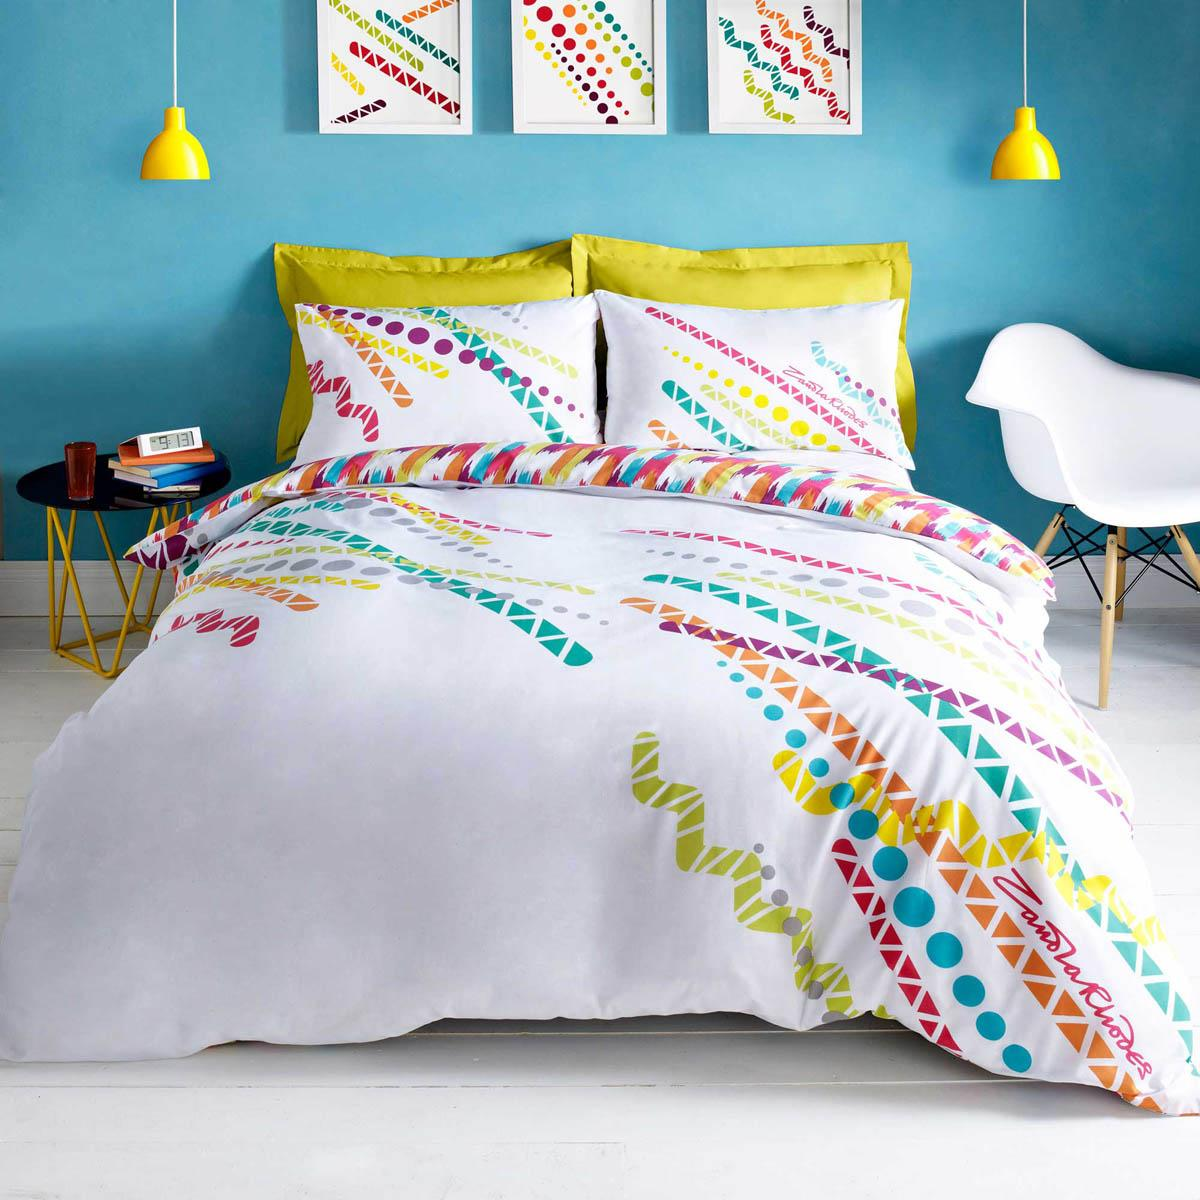 Bedding Sets Next Day Delivery.Bright Quilts Bedding. Zandra ...